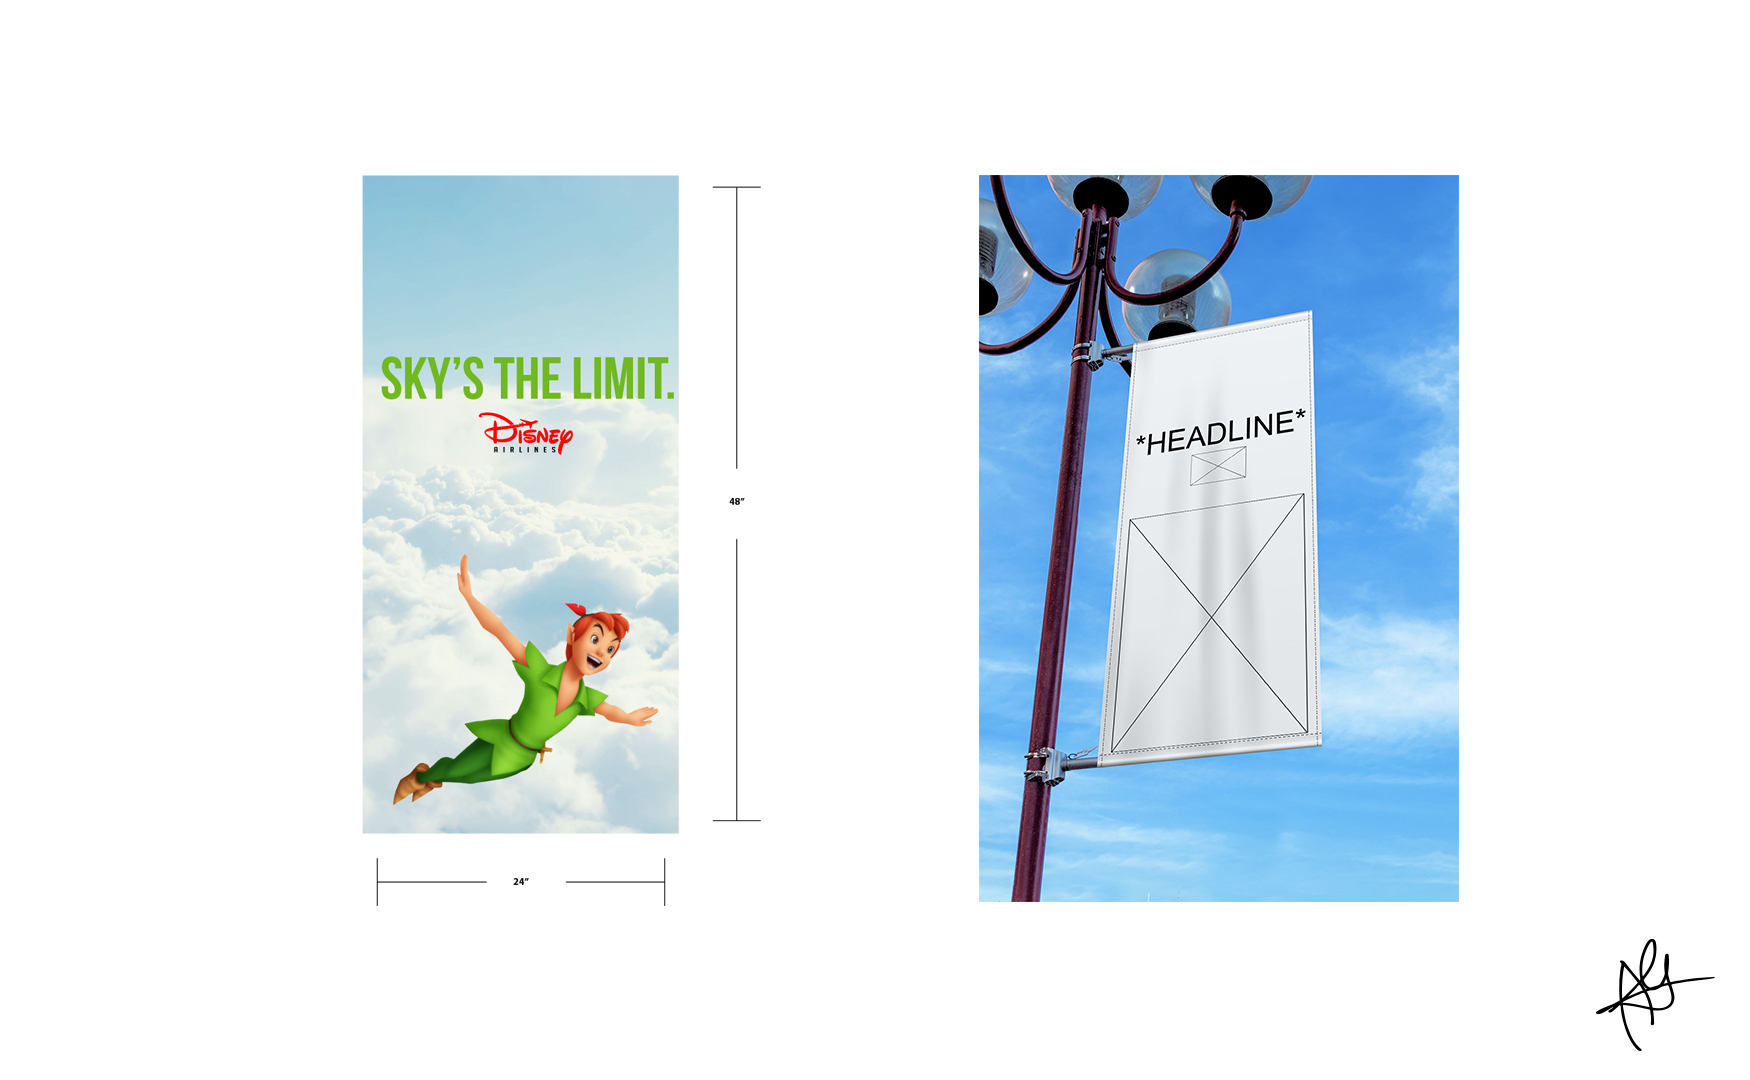 DISNEY AIRLINE LAMP BANNER FINAL ARTORK.jpg